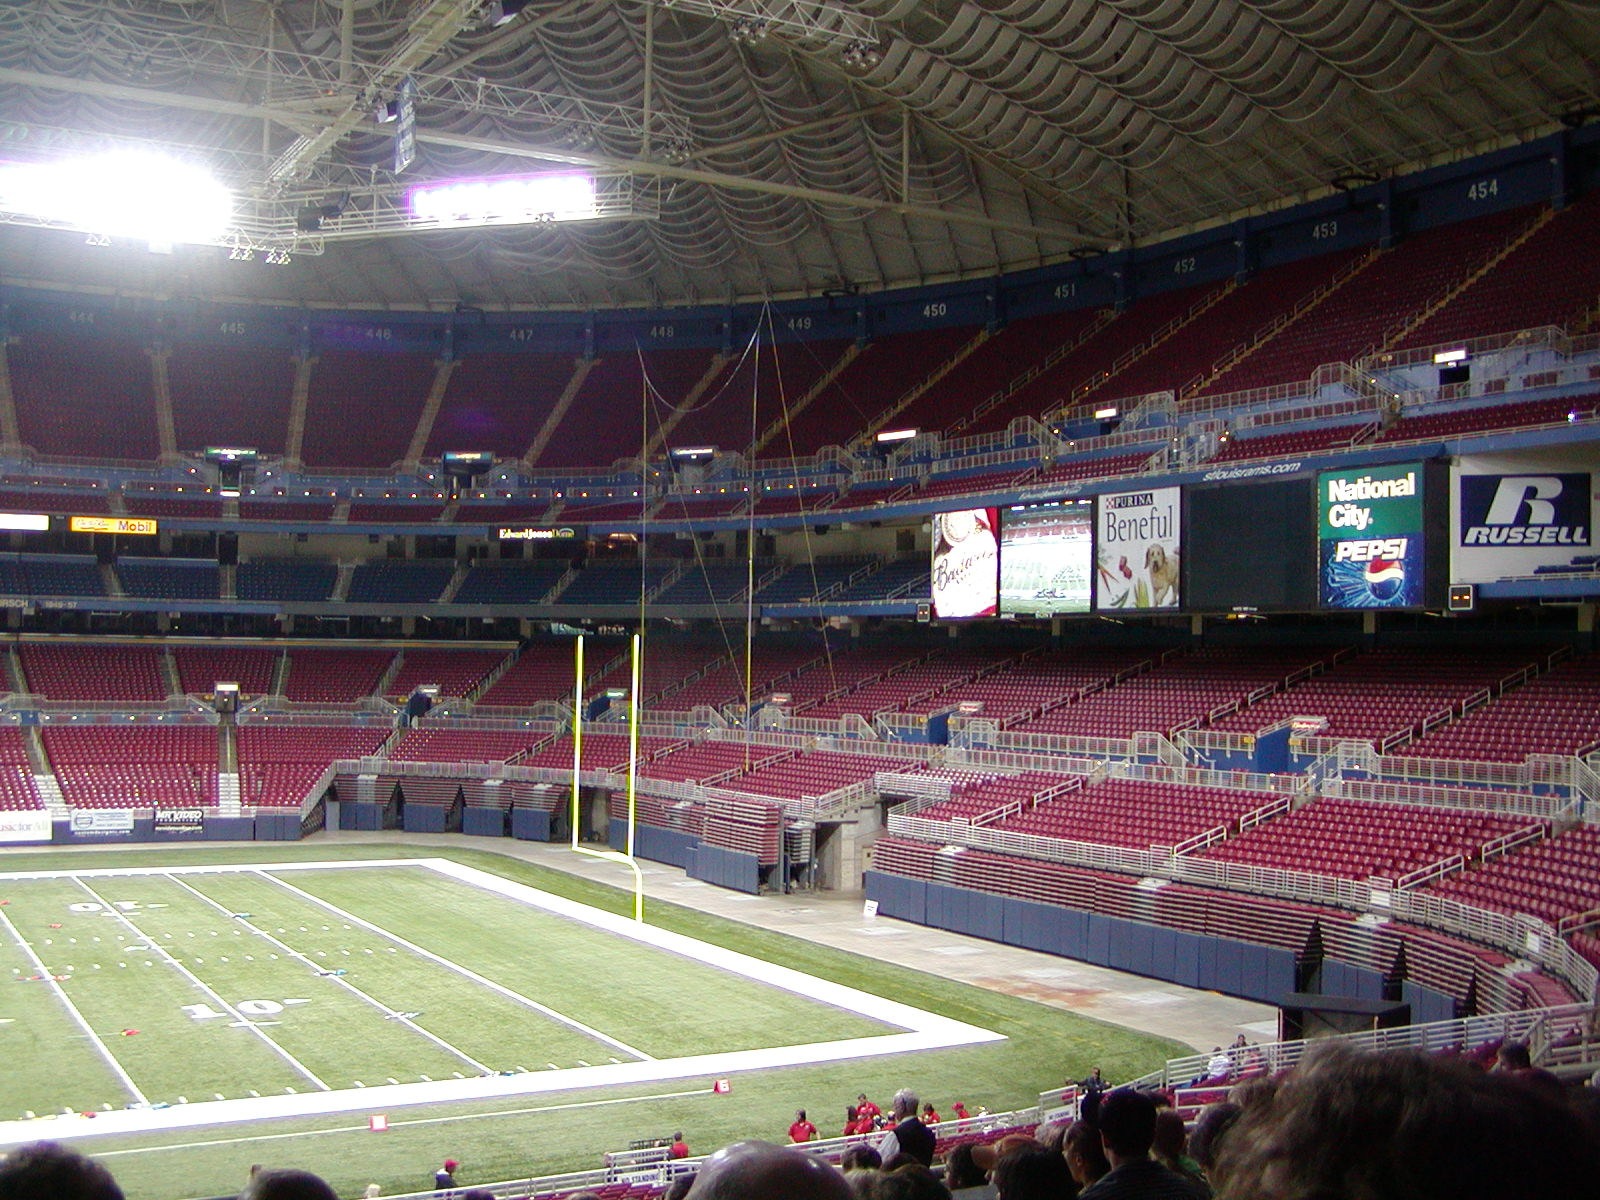 View of the Edward Jones Dome football field and seating.